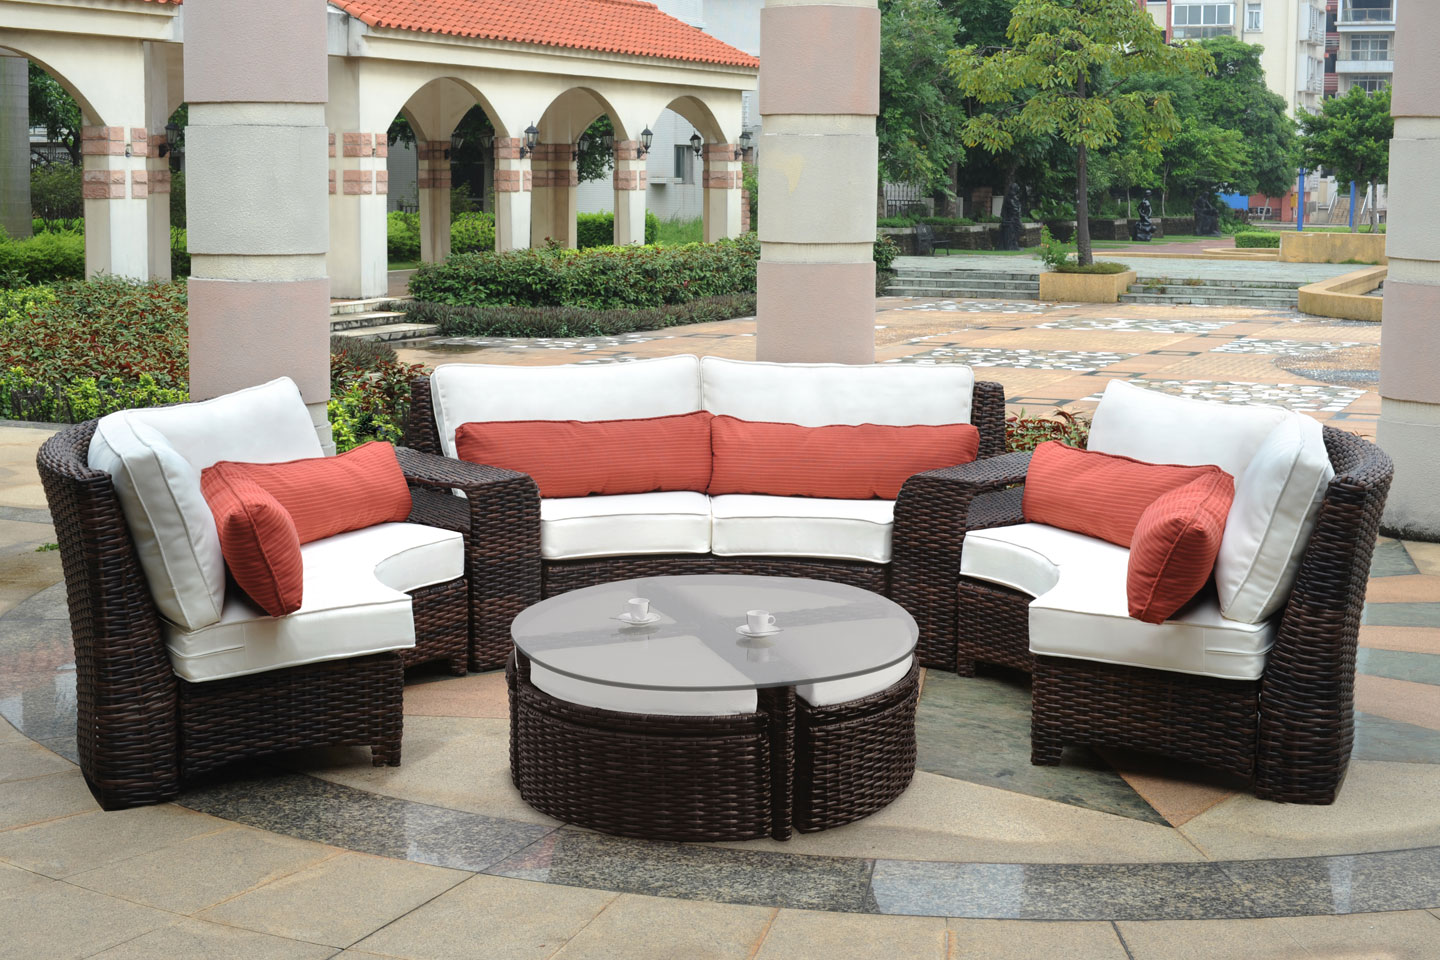 Awesome Fiji Curved Outdoor Resin Wicker Round Patio Sectional